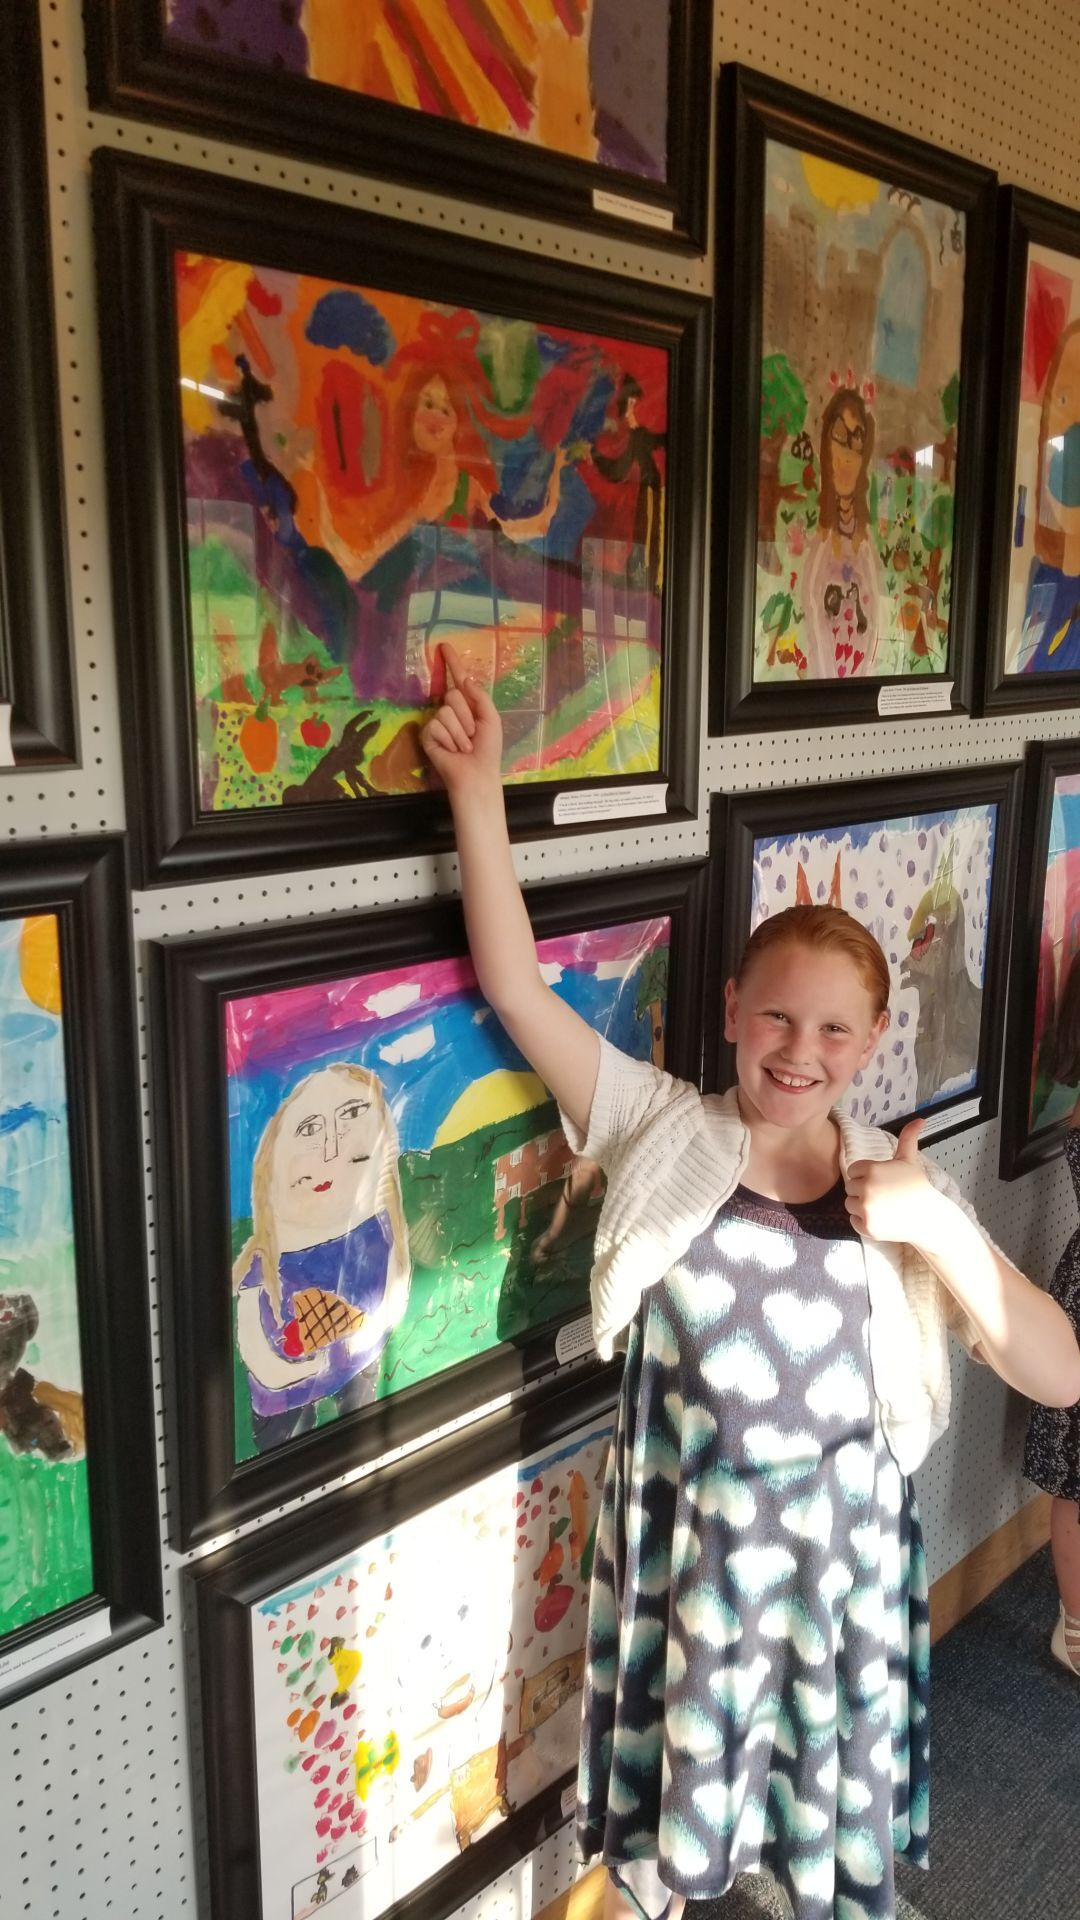 Students' art on display at Battle of Pilot Knob State Historic Site